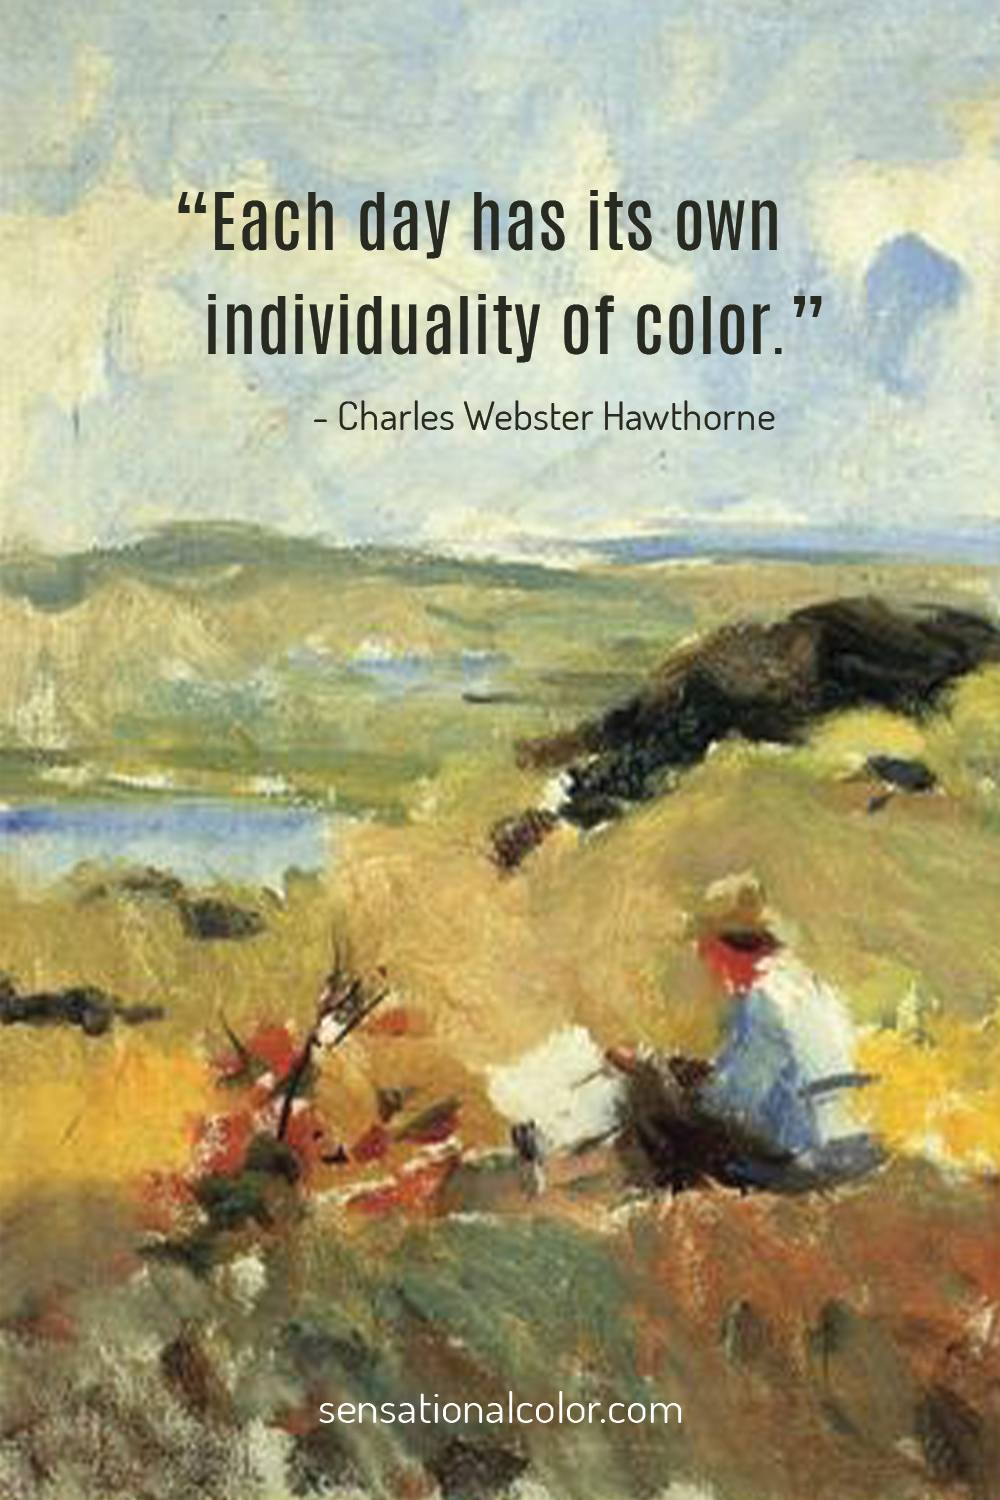 """Each day has its own individuality of color."" - Charles Hawthorne"